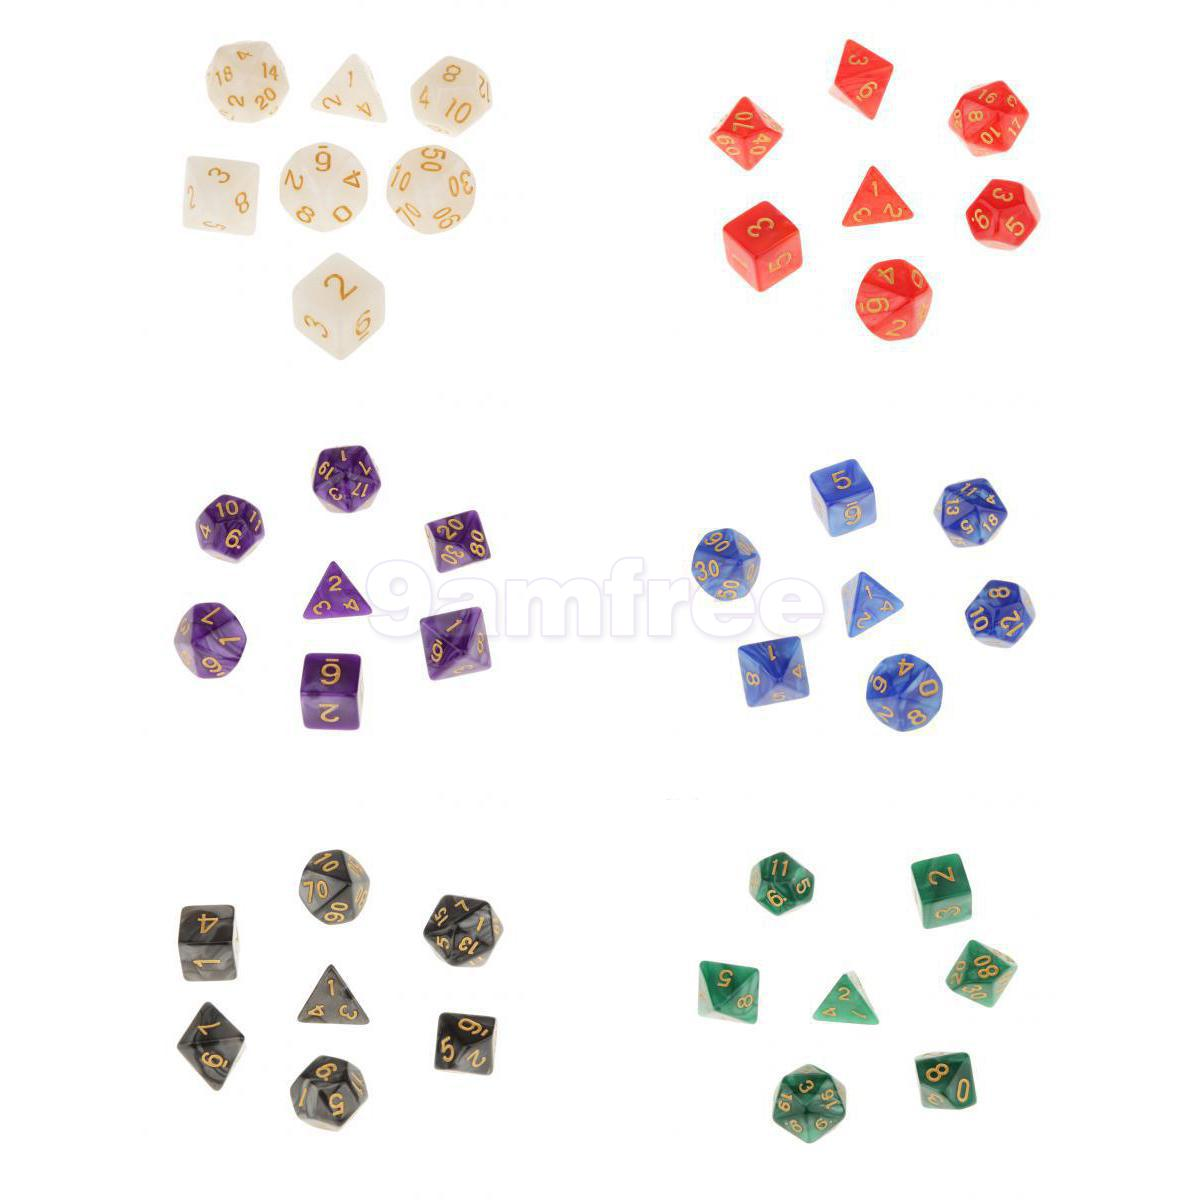 Acrylic Polyhedral Dice 16mm for Dungeons and Dragons DND MTG Table Games White/Red/Purple/Blue/Black/Green